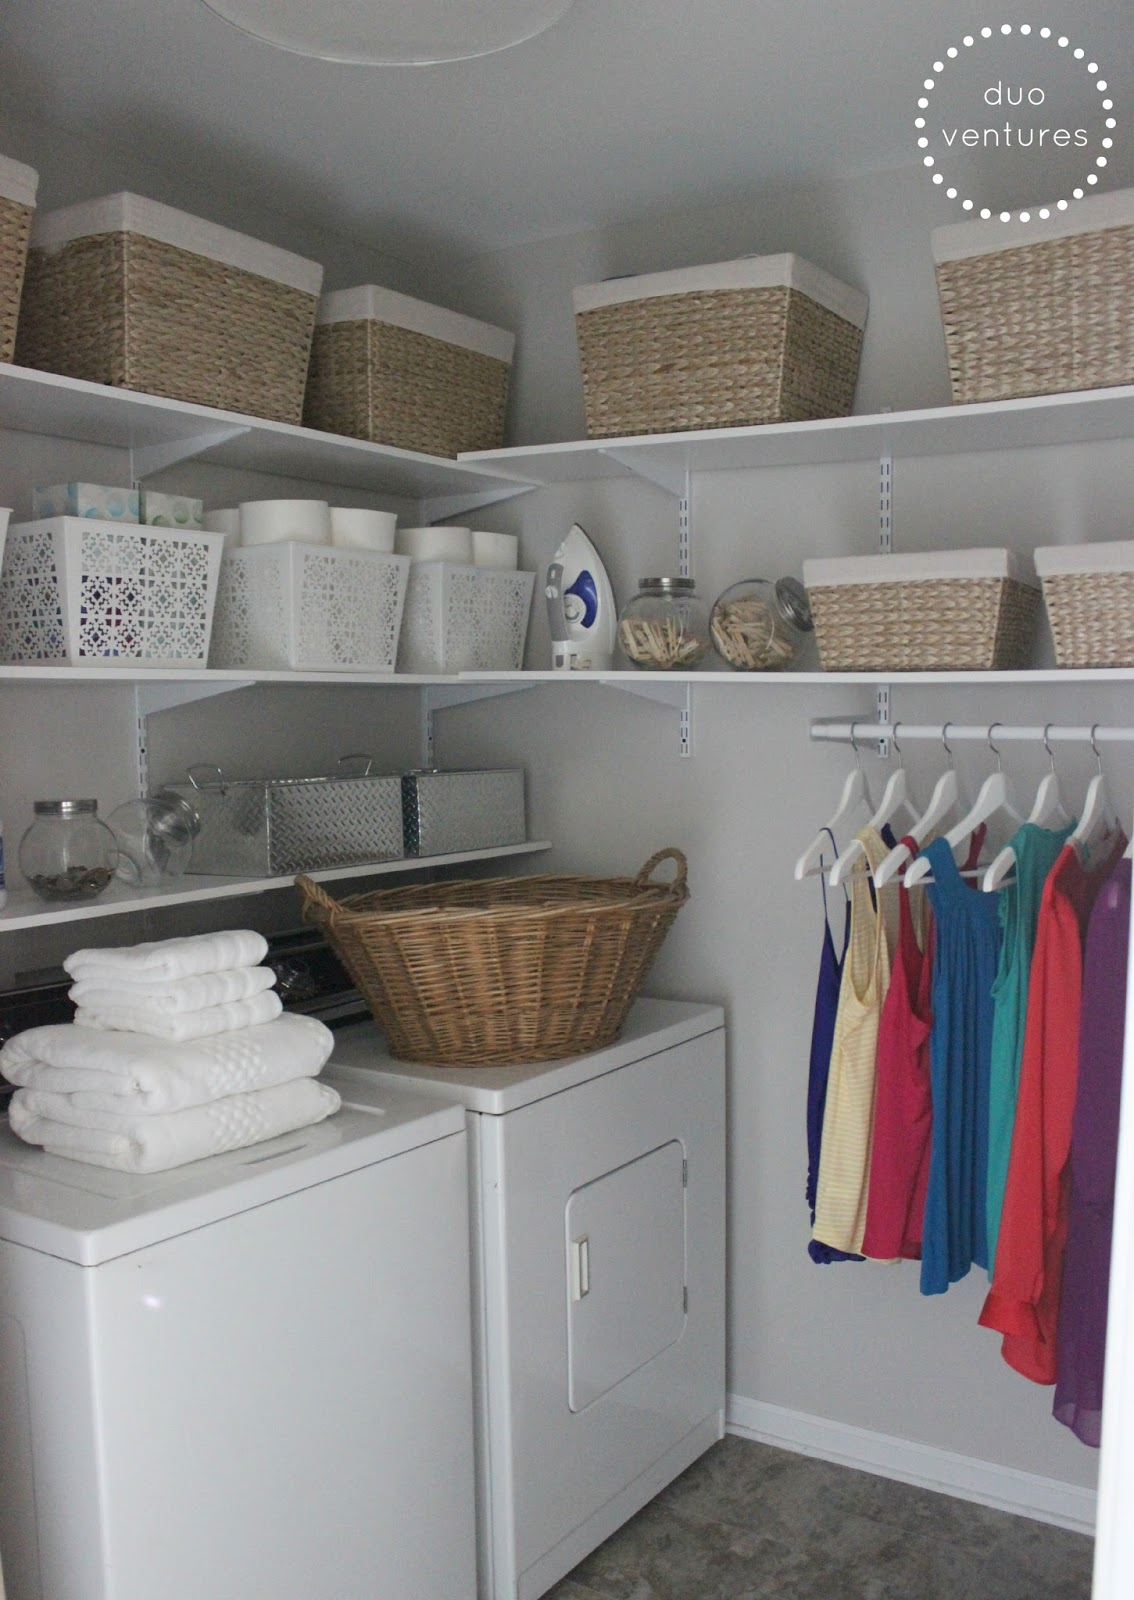 Duo ventures laundry room makeover for Utility room design